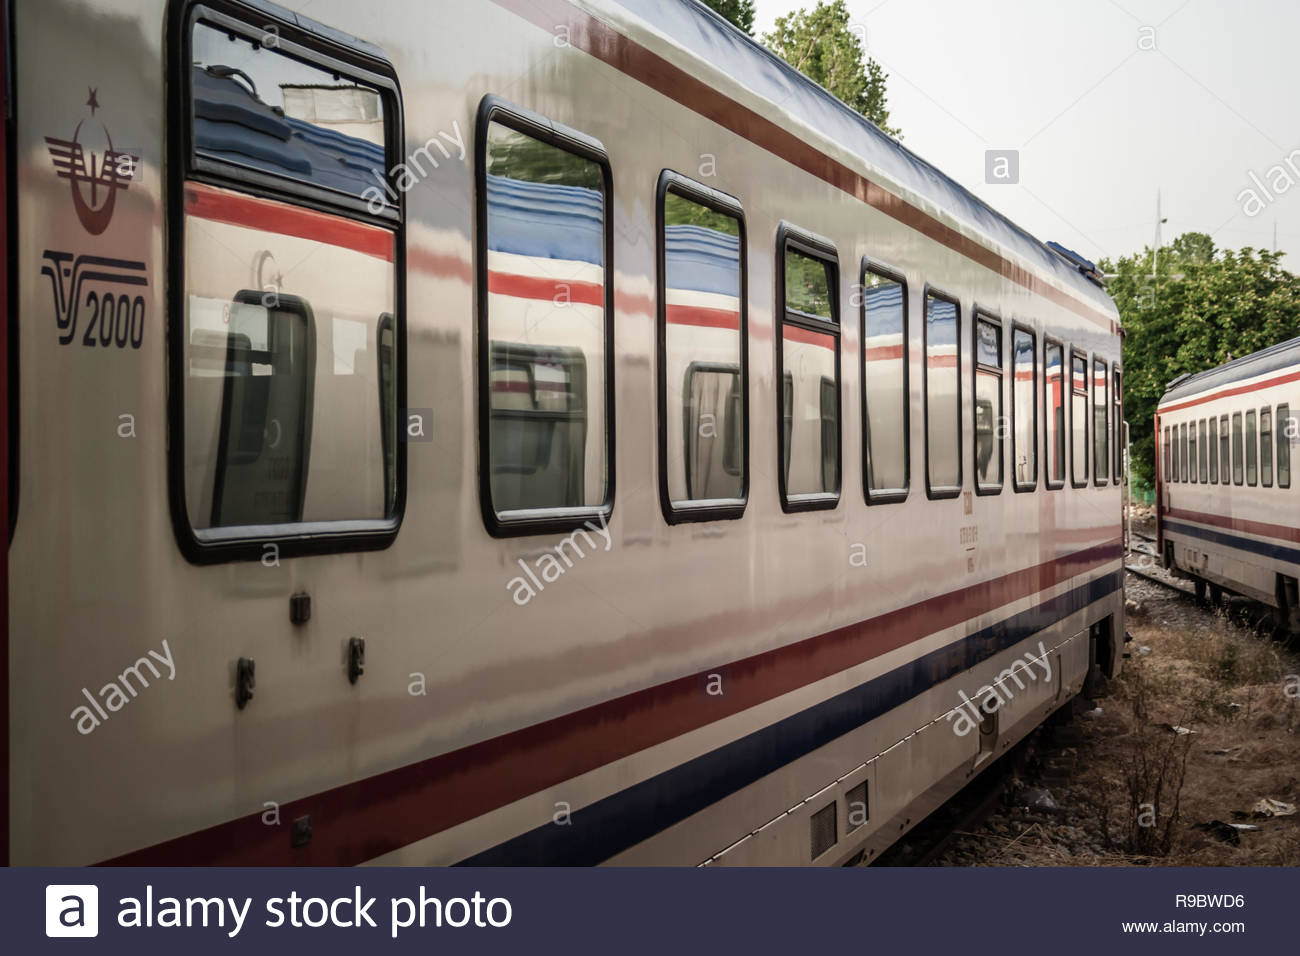 Istanbul, Turkey - May 20, 2008: Spare intercity train wagons on the rails - Stock Image